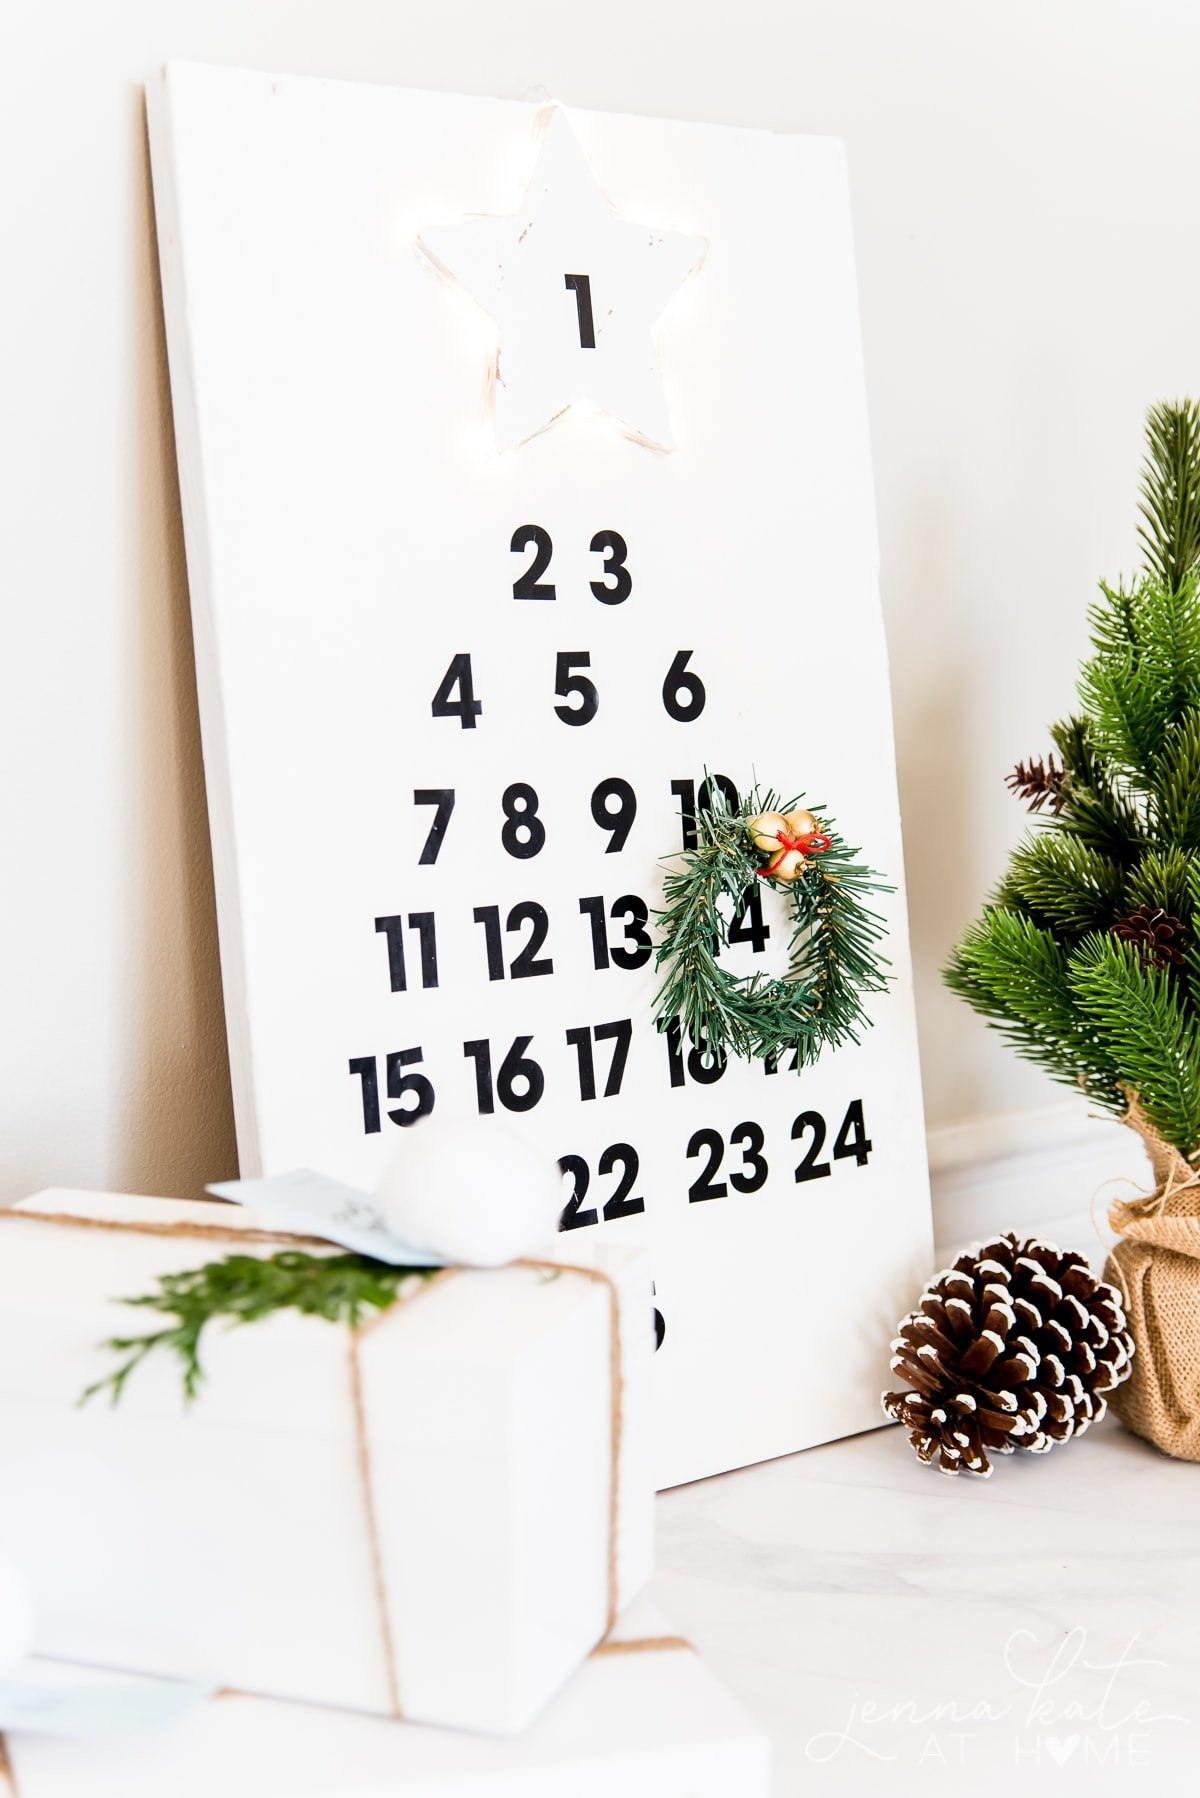 This DIY Wooden Advent calendar is simple Christmas decor